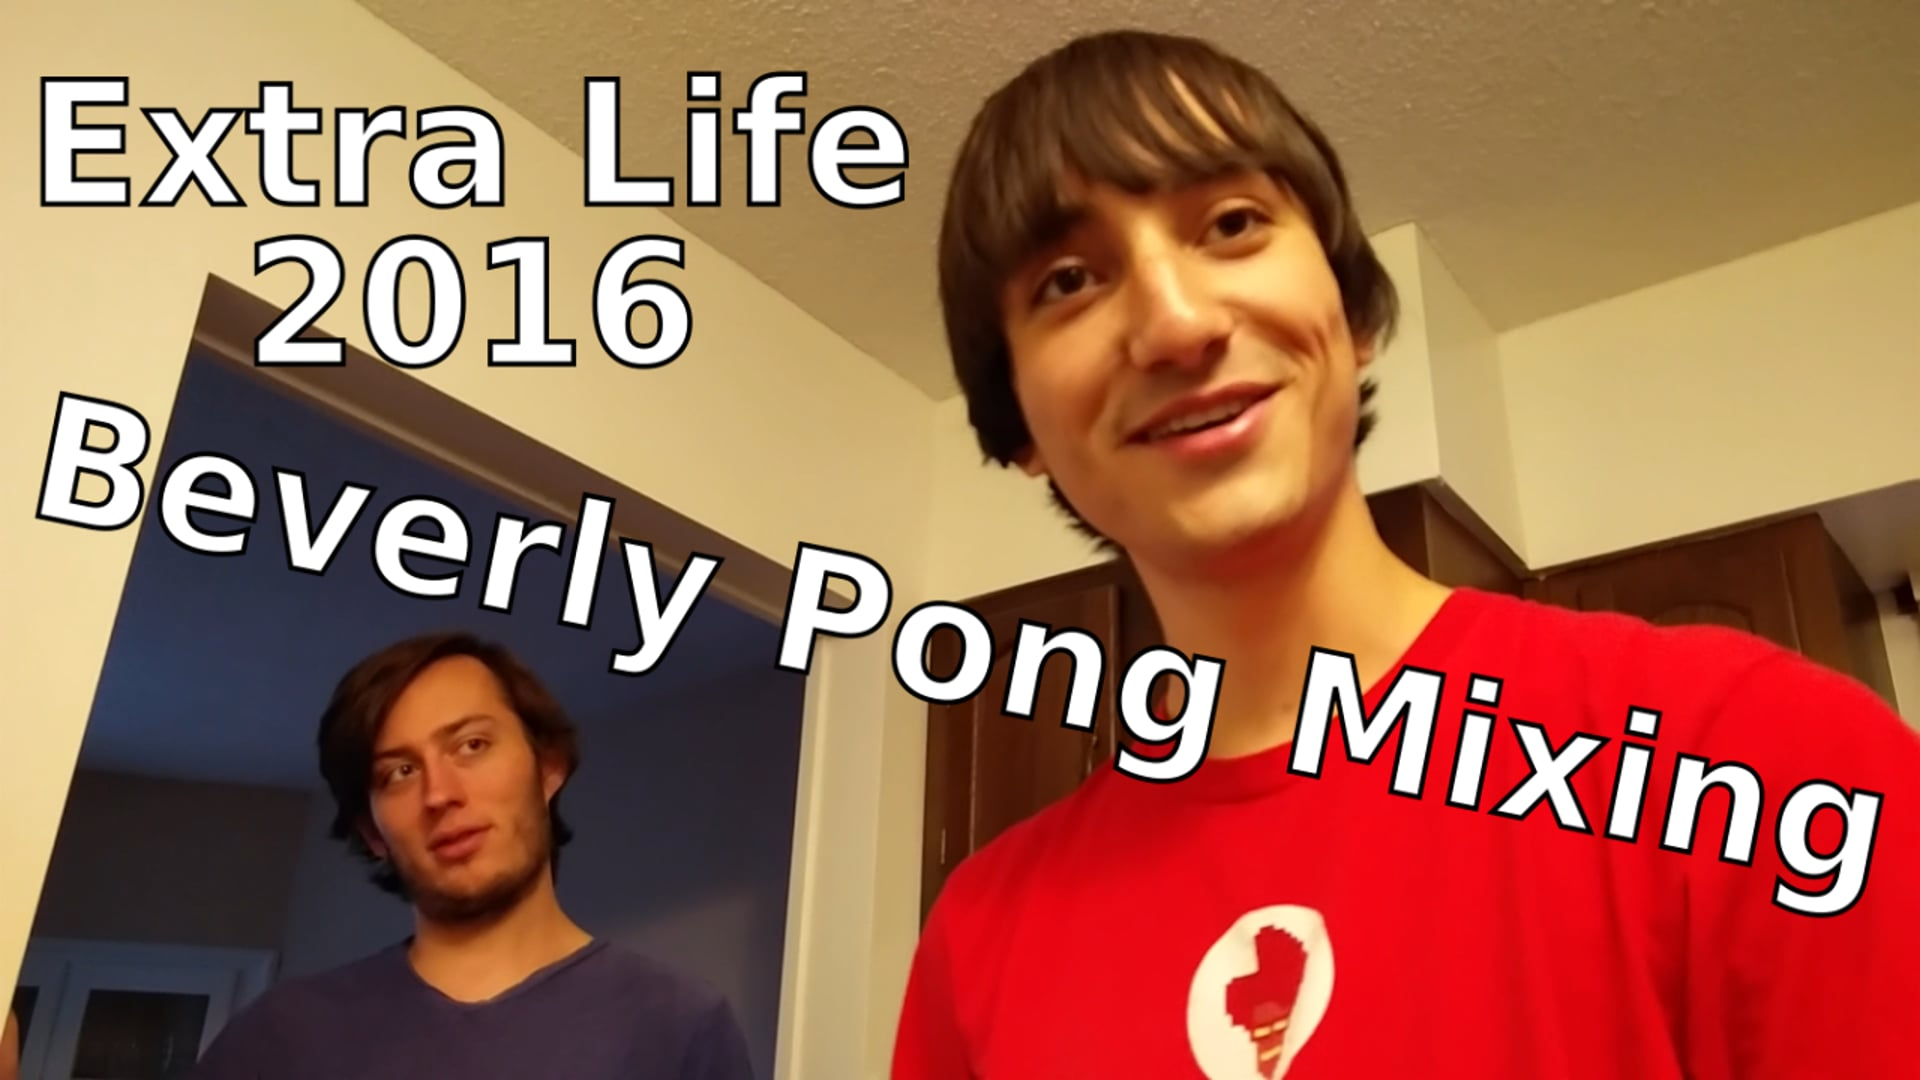 Beverly Pong Mixing - Extra Life 2016 BTS